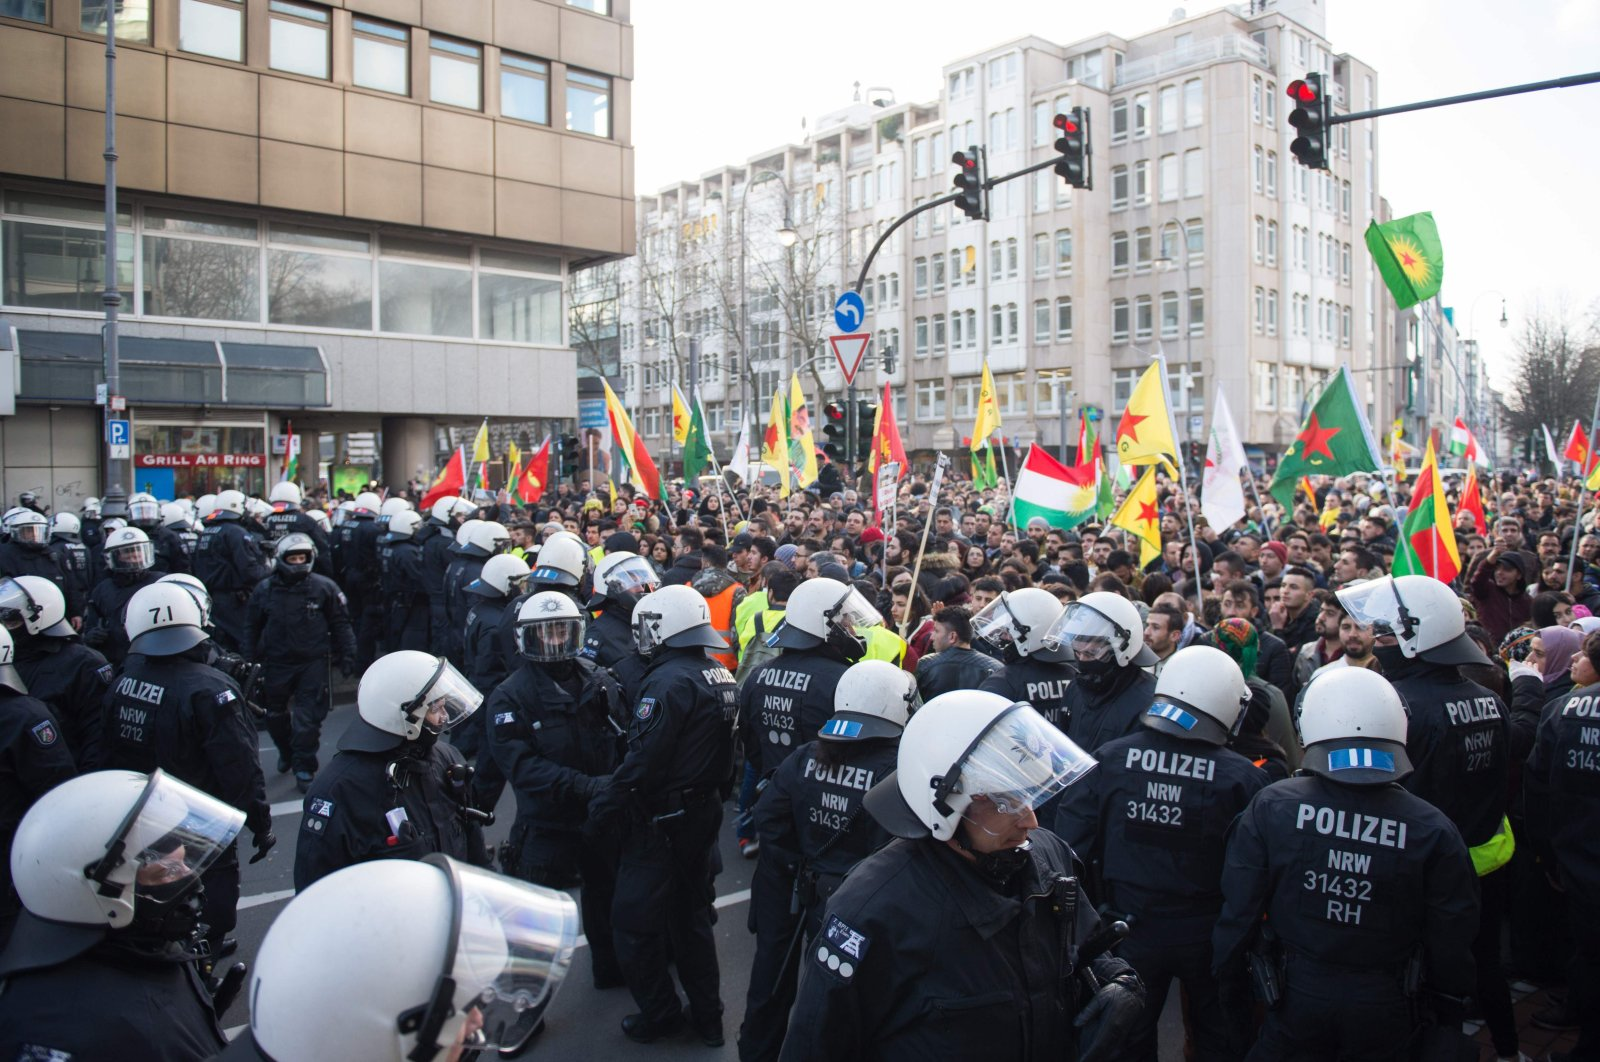 German police officers break up a mass demonstration with more than 20,000 participants protesting against Turkey's counterterrorism operation in Syria, in Cologne, western Germany, Jan. 27, 2018. (AFP Photo)